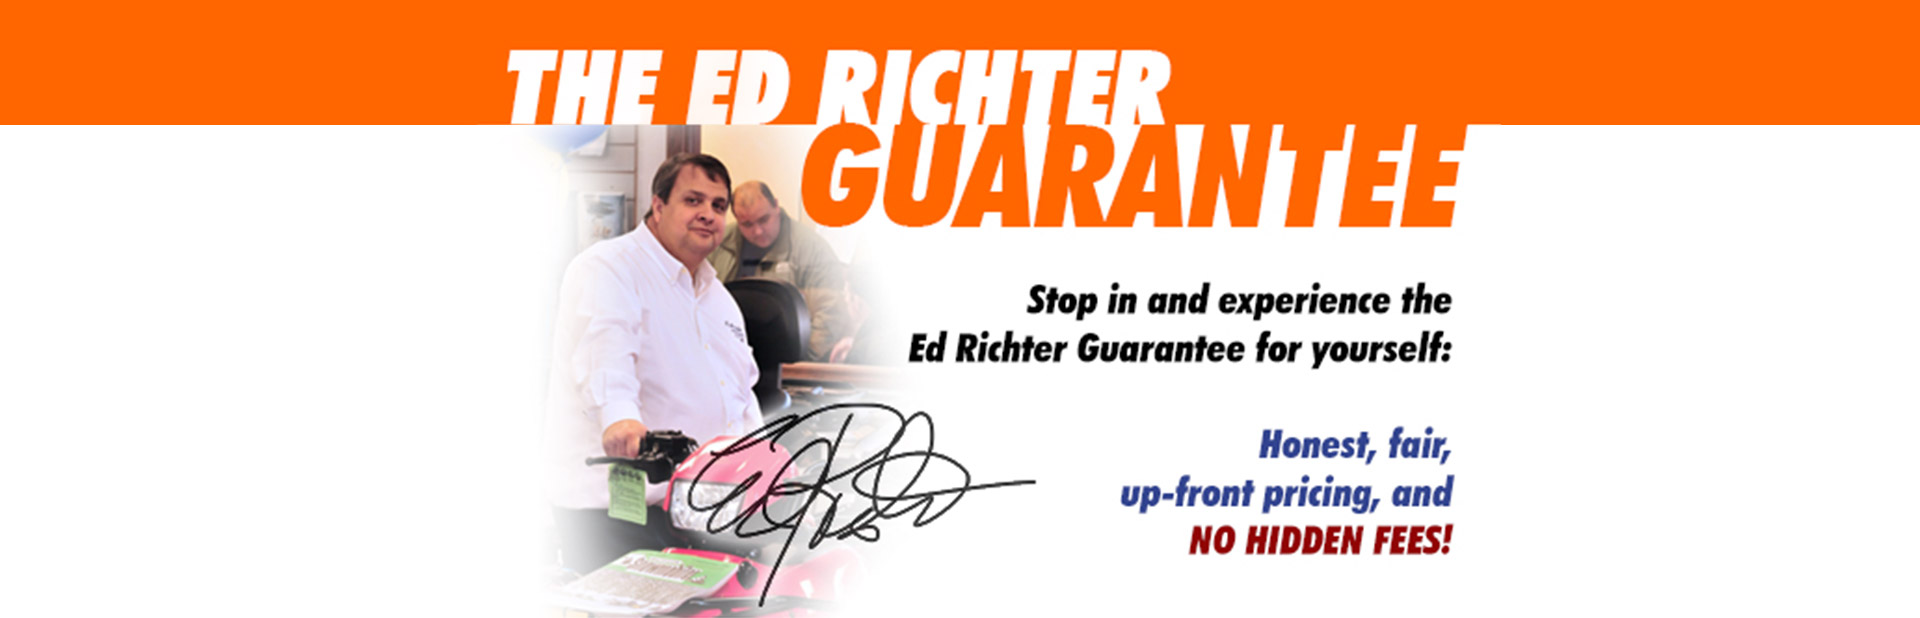 Stop in and experience the Ed Richter Guarantee for yourself: Honest, fair, up-front pricing, and NO HIDDEN FEES!